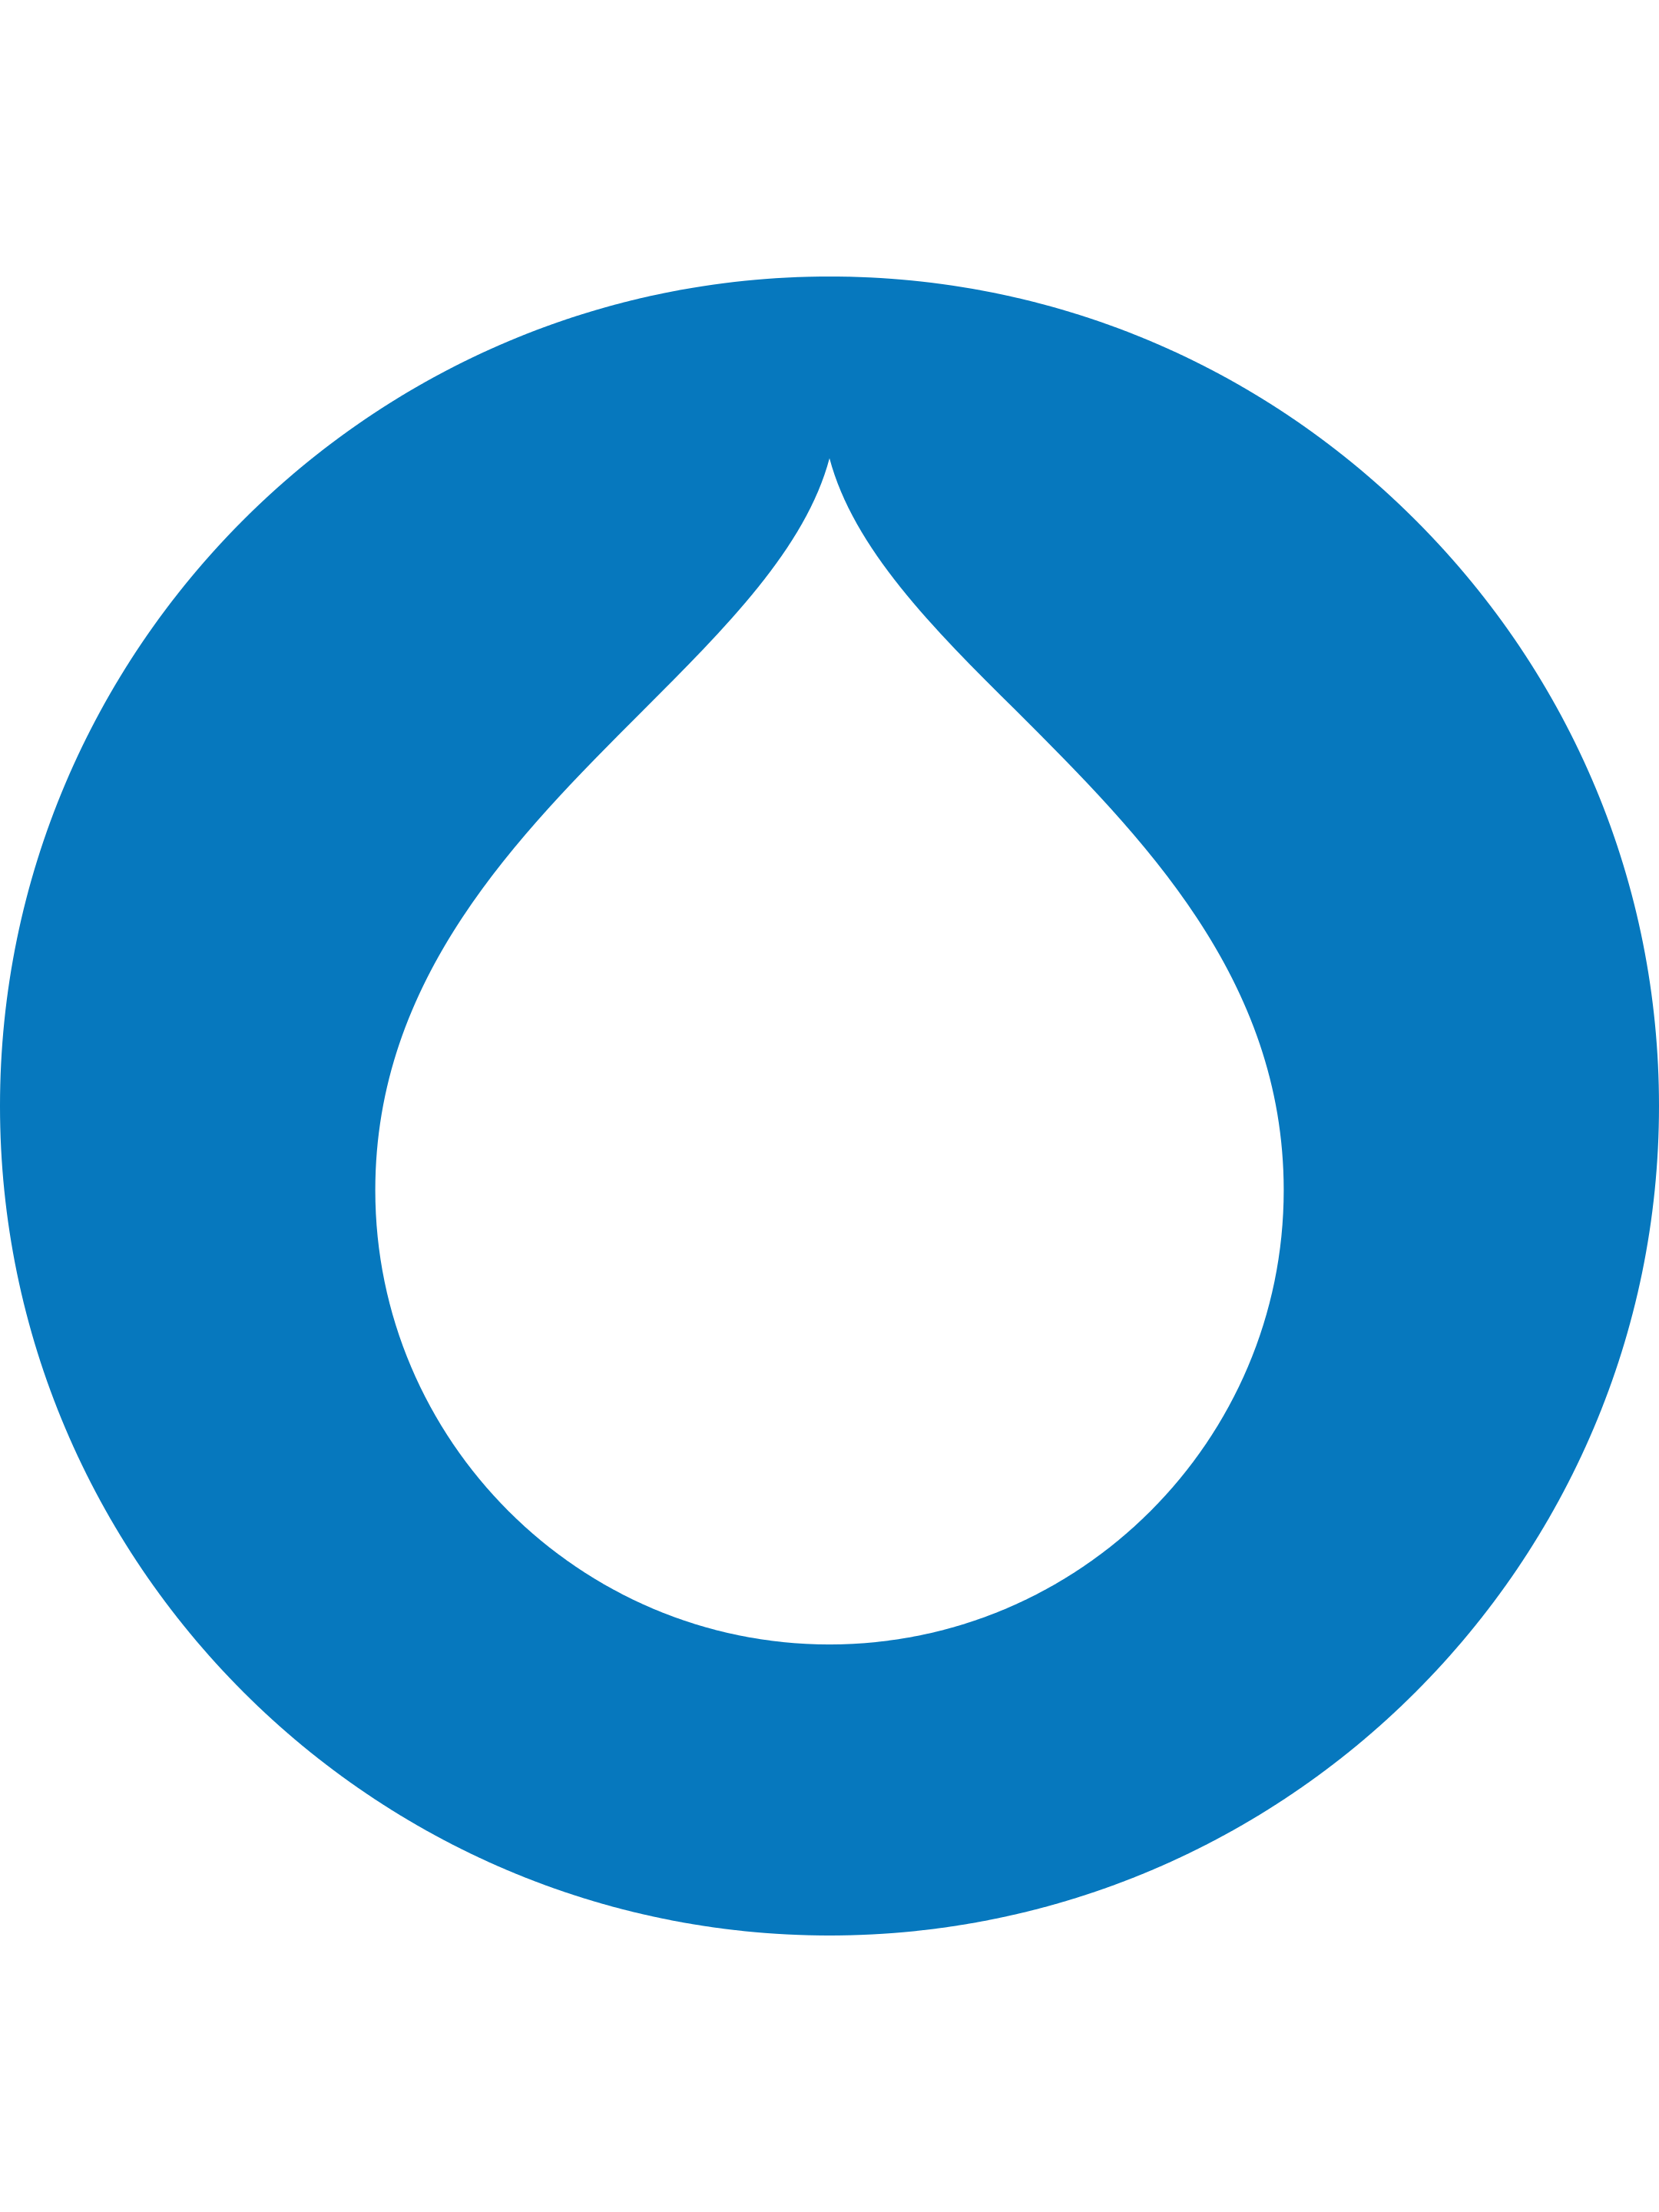 Drupal - Drupal Is A Free And Open Source Cms Written In Php And Distributed Under The Gnu General Public License Provides A Back End For Web Sites Worldwide